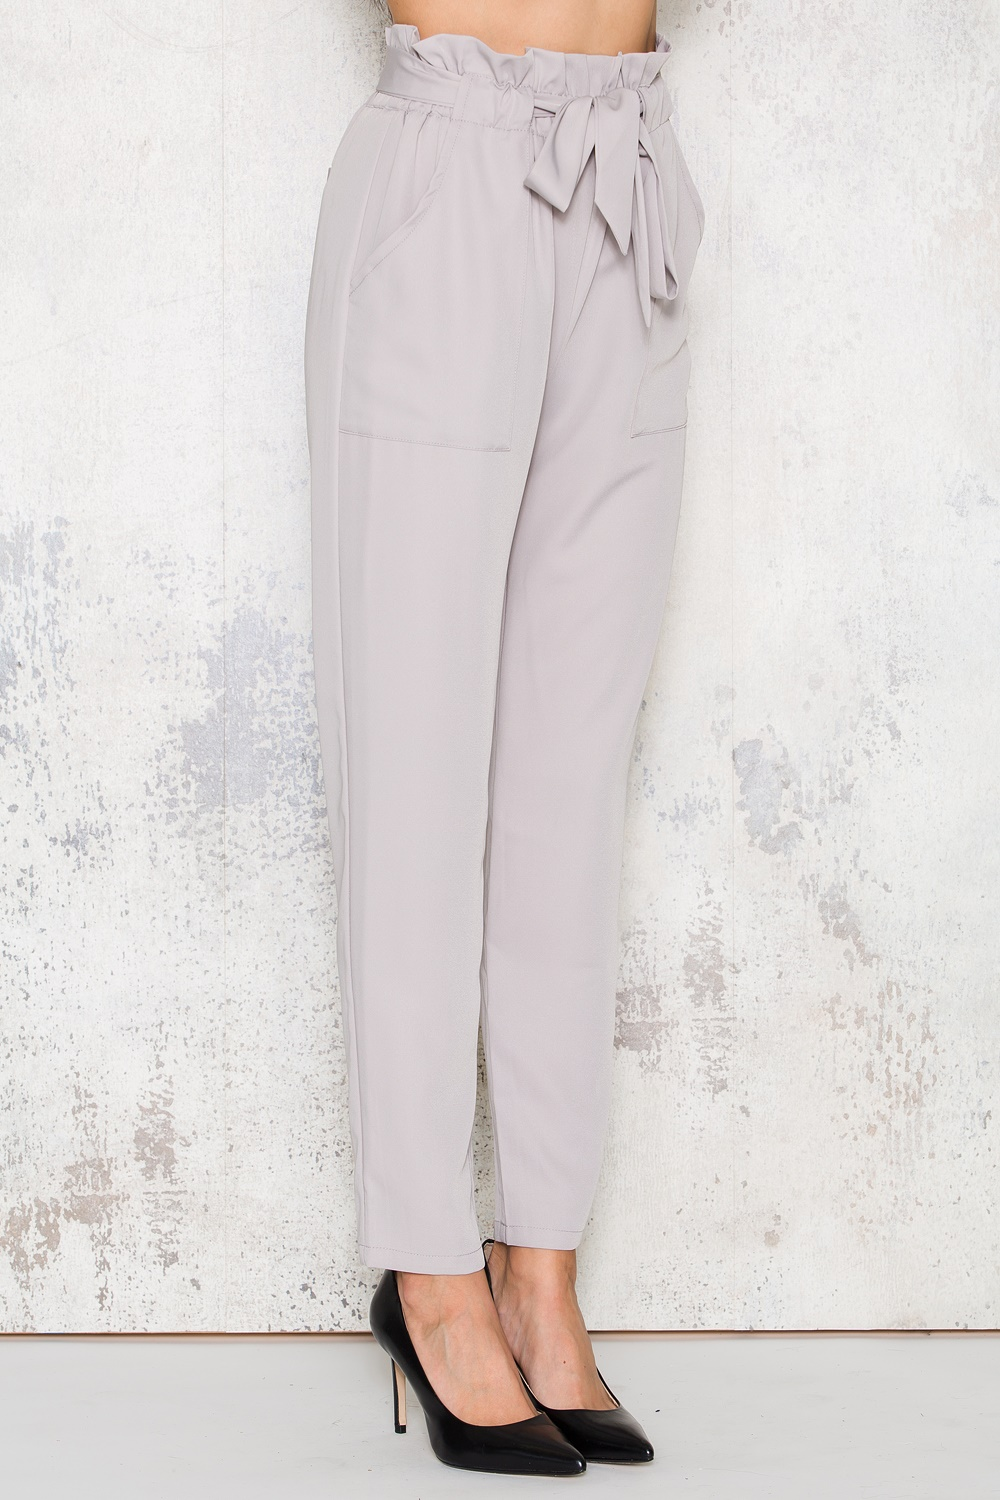 Freya Pants - Grey